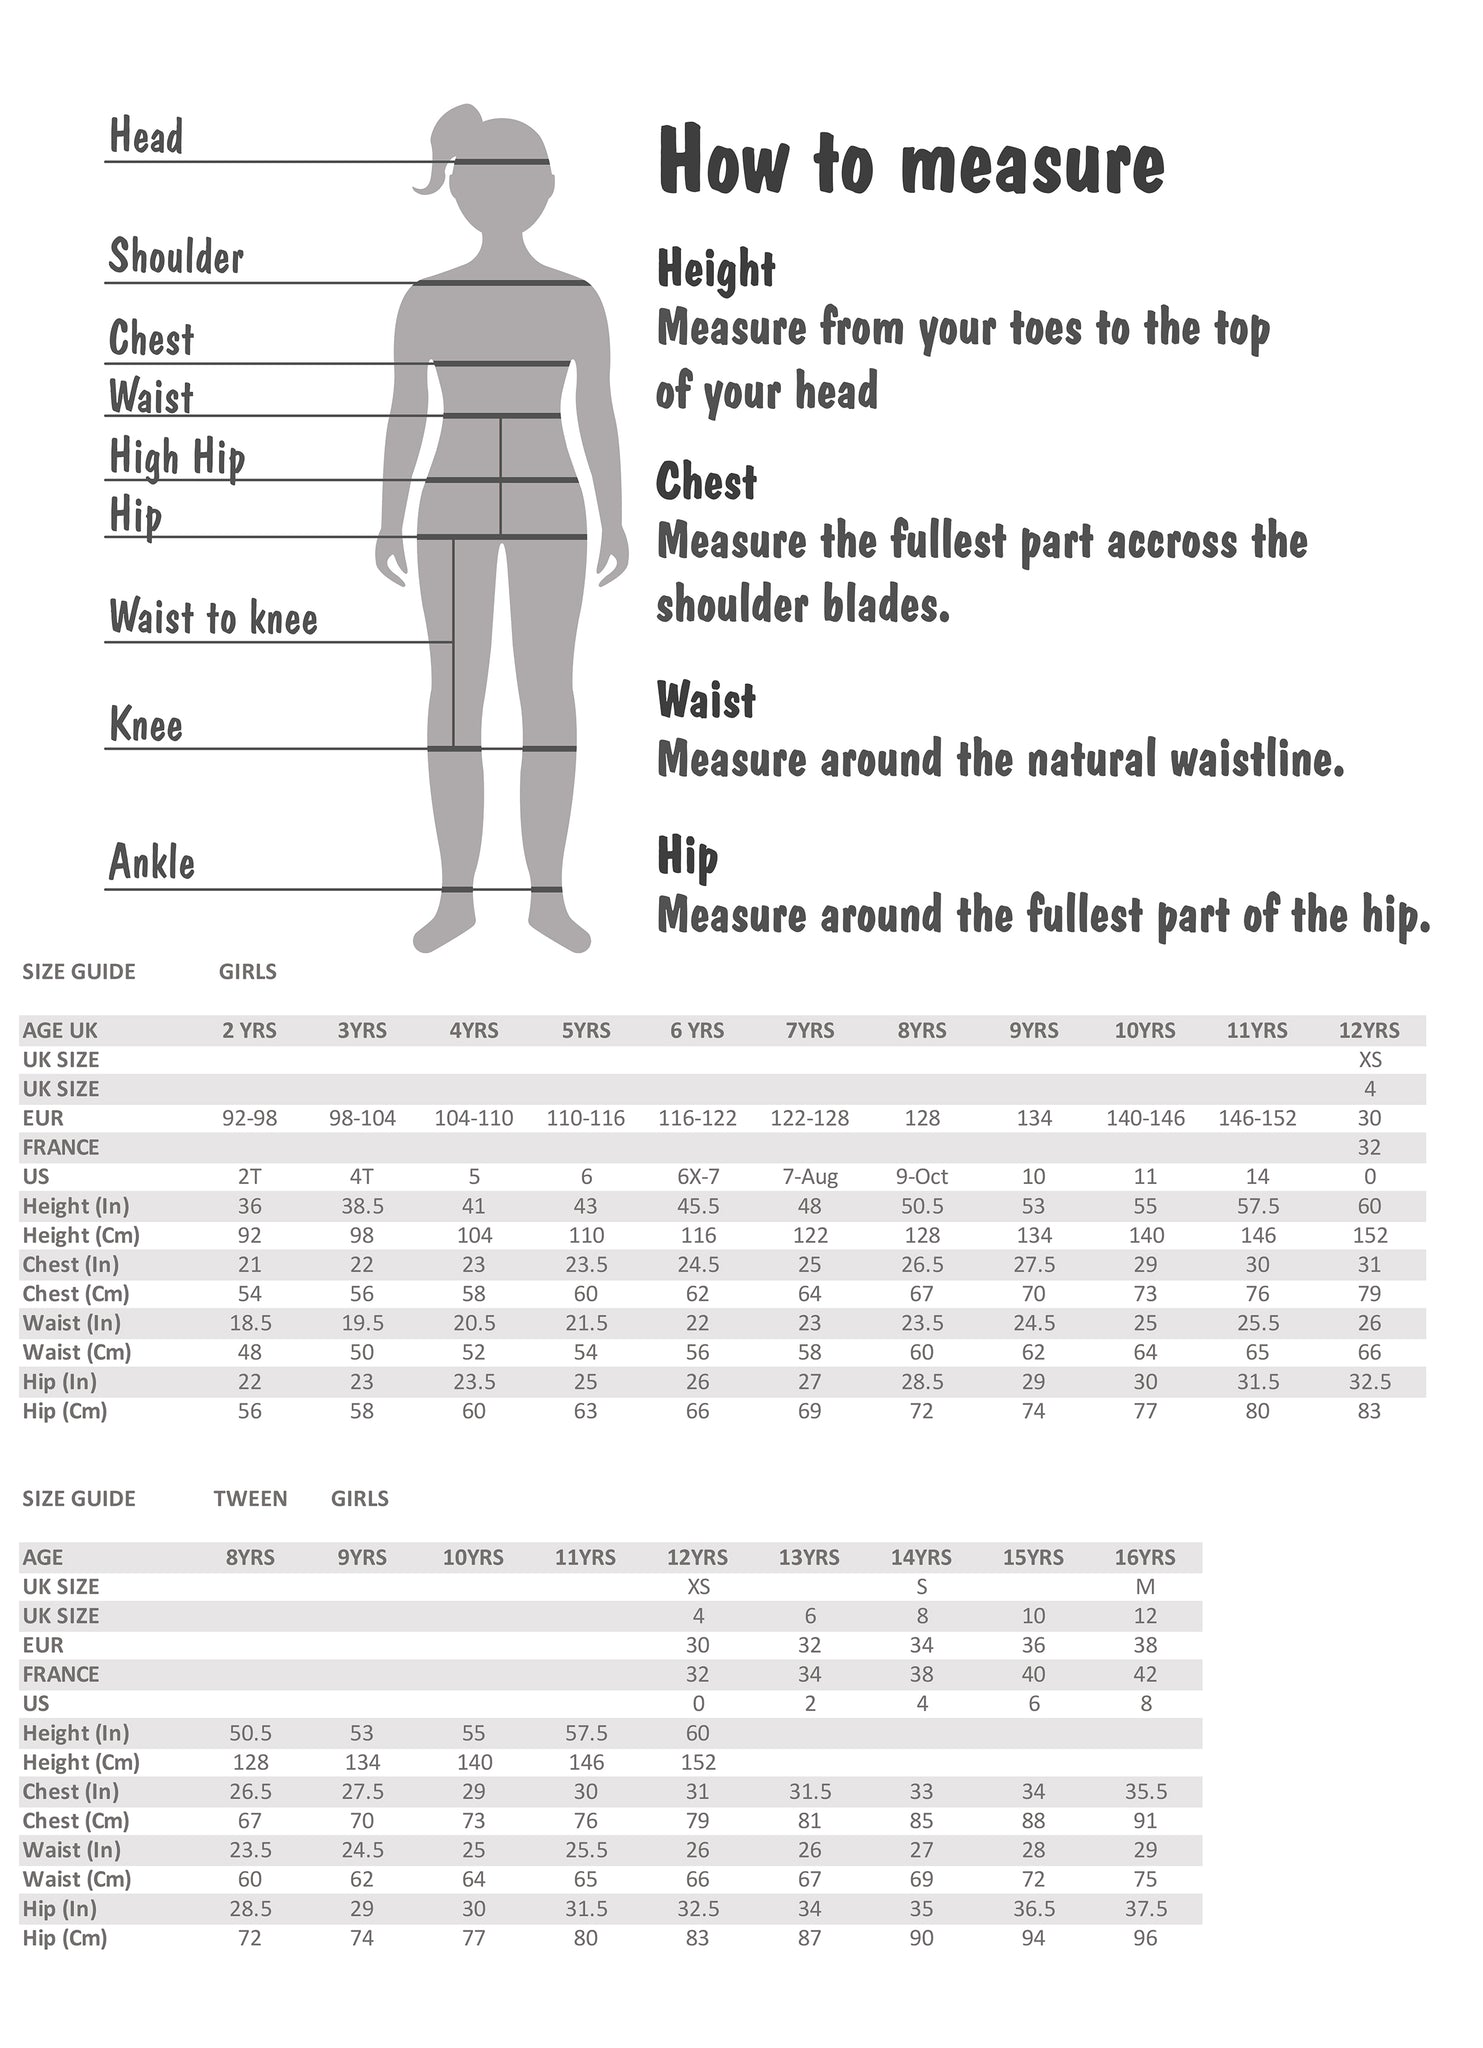 Size Chart for tween girls and younger girls 2 years to 14 years old